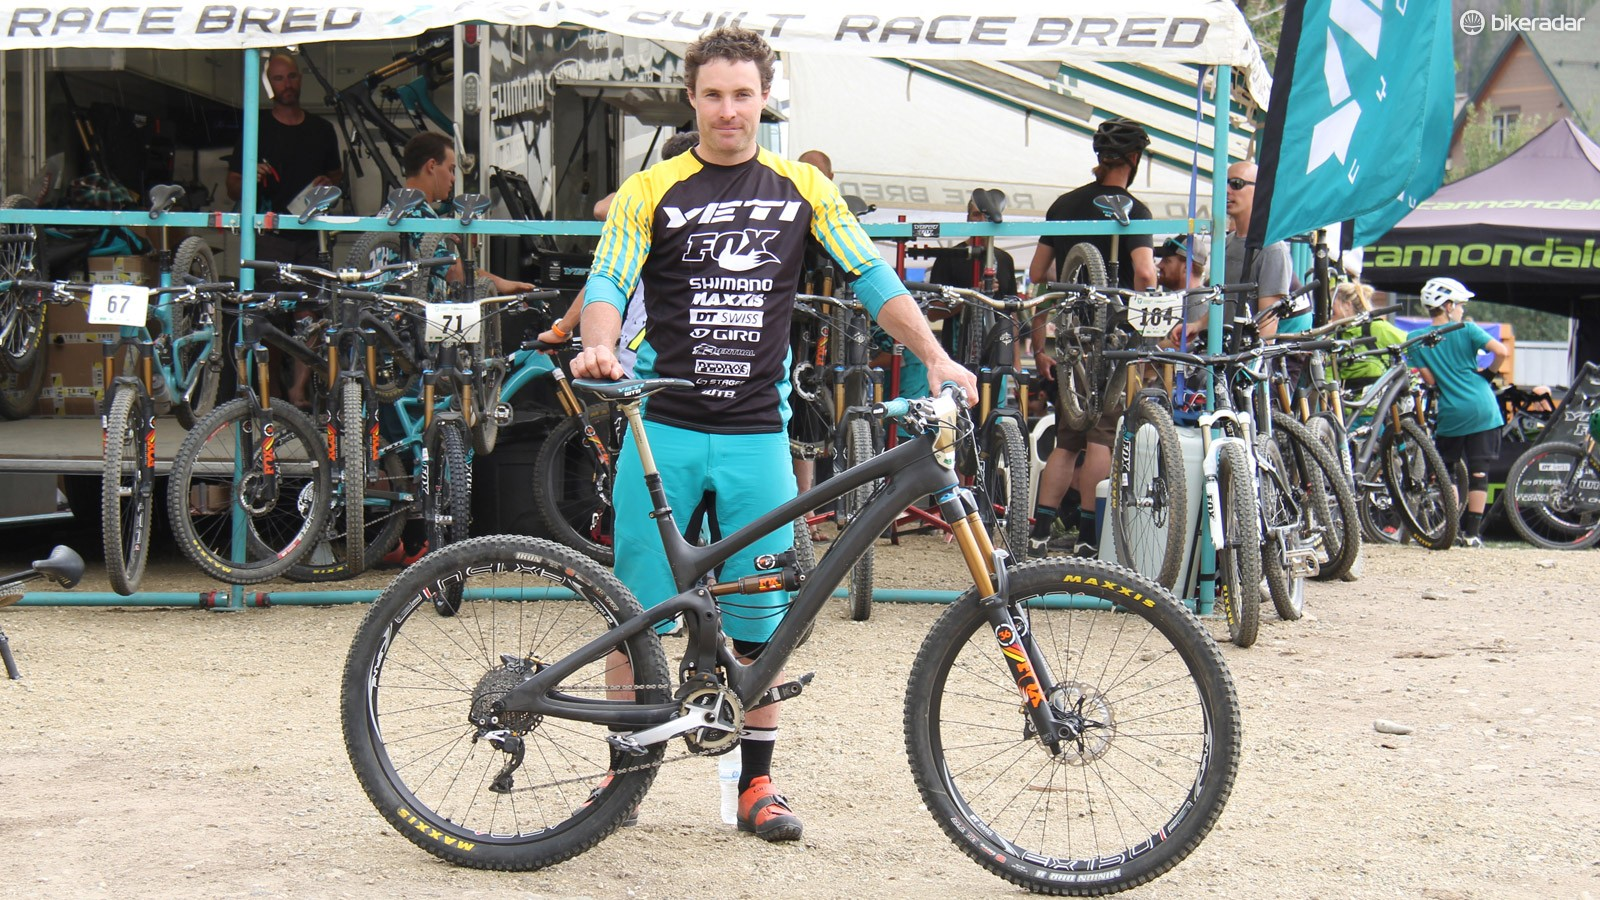 Jared Graves won four of the seven stages to secure the overall victory at the fifth stop at this year's Enduro World Series in Winterpark, Colorado, aboard his new SB6c